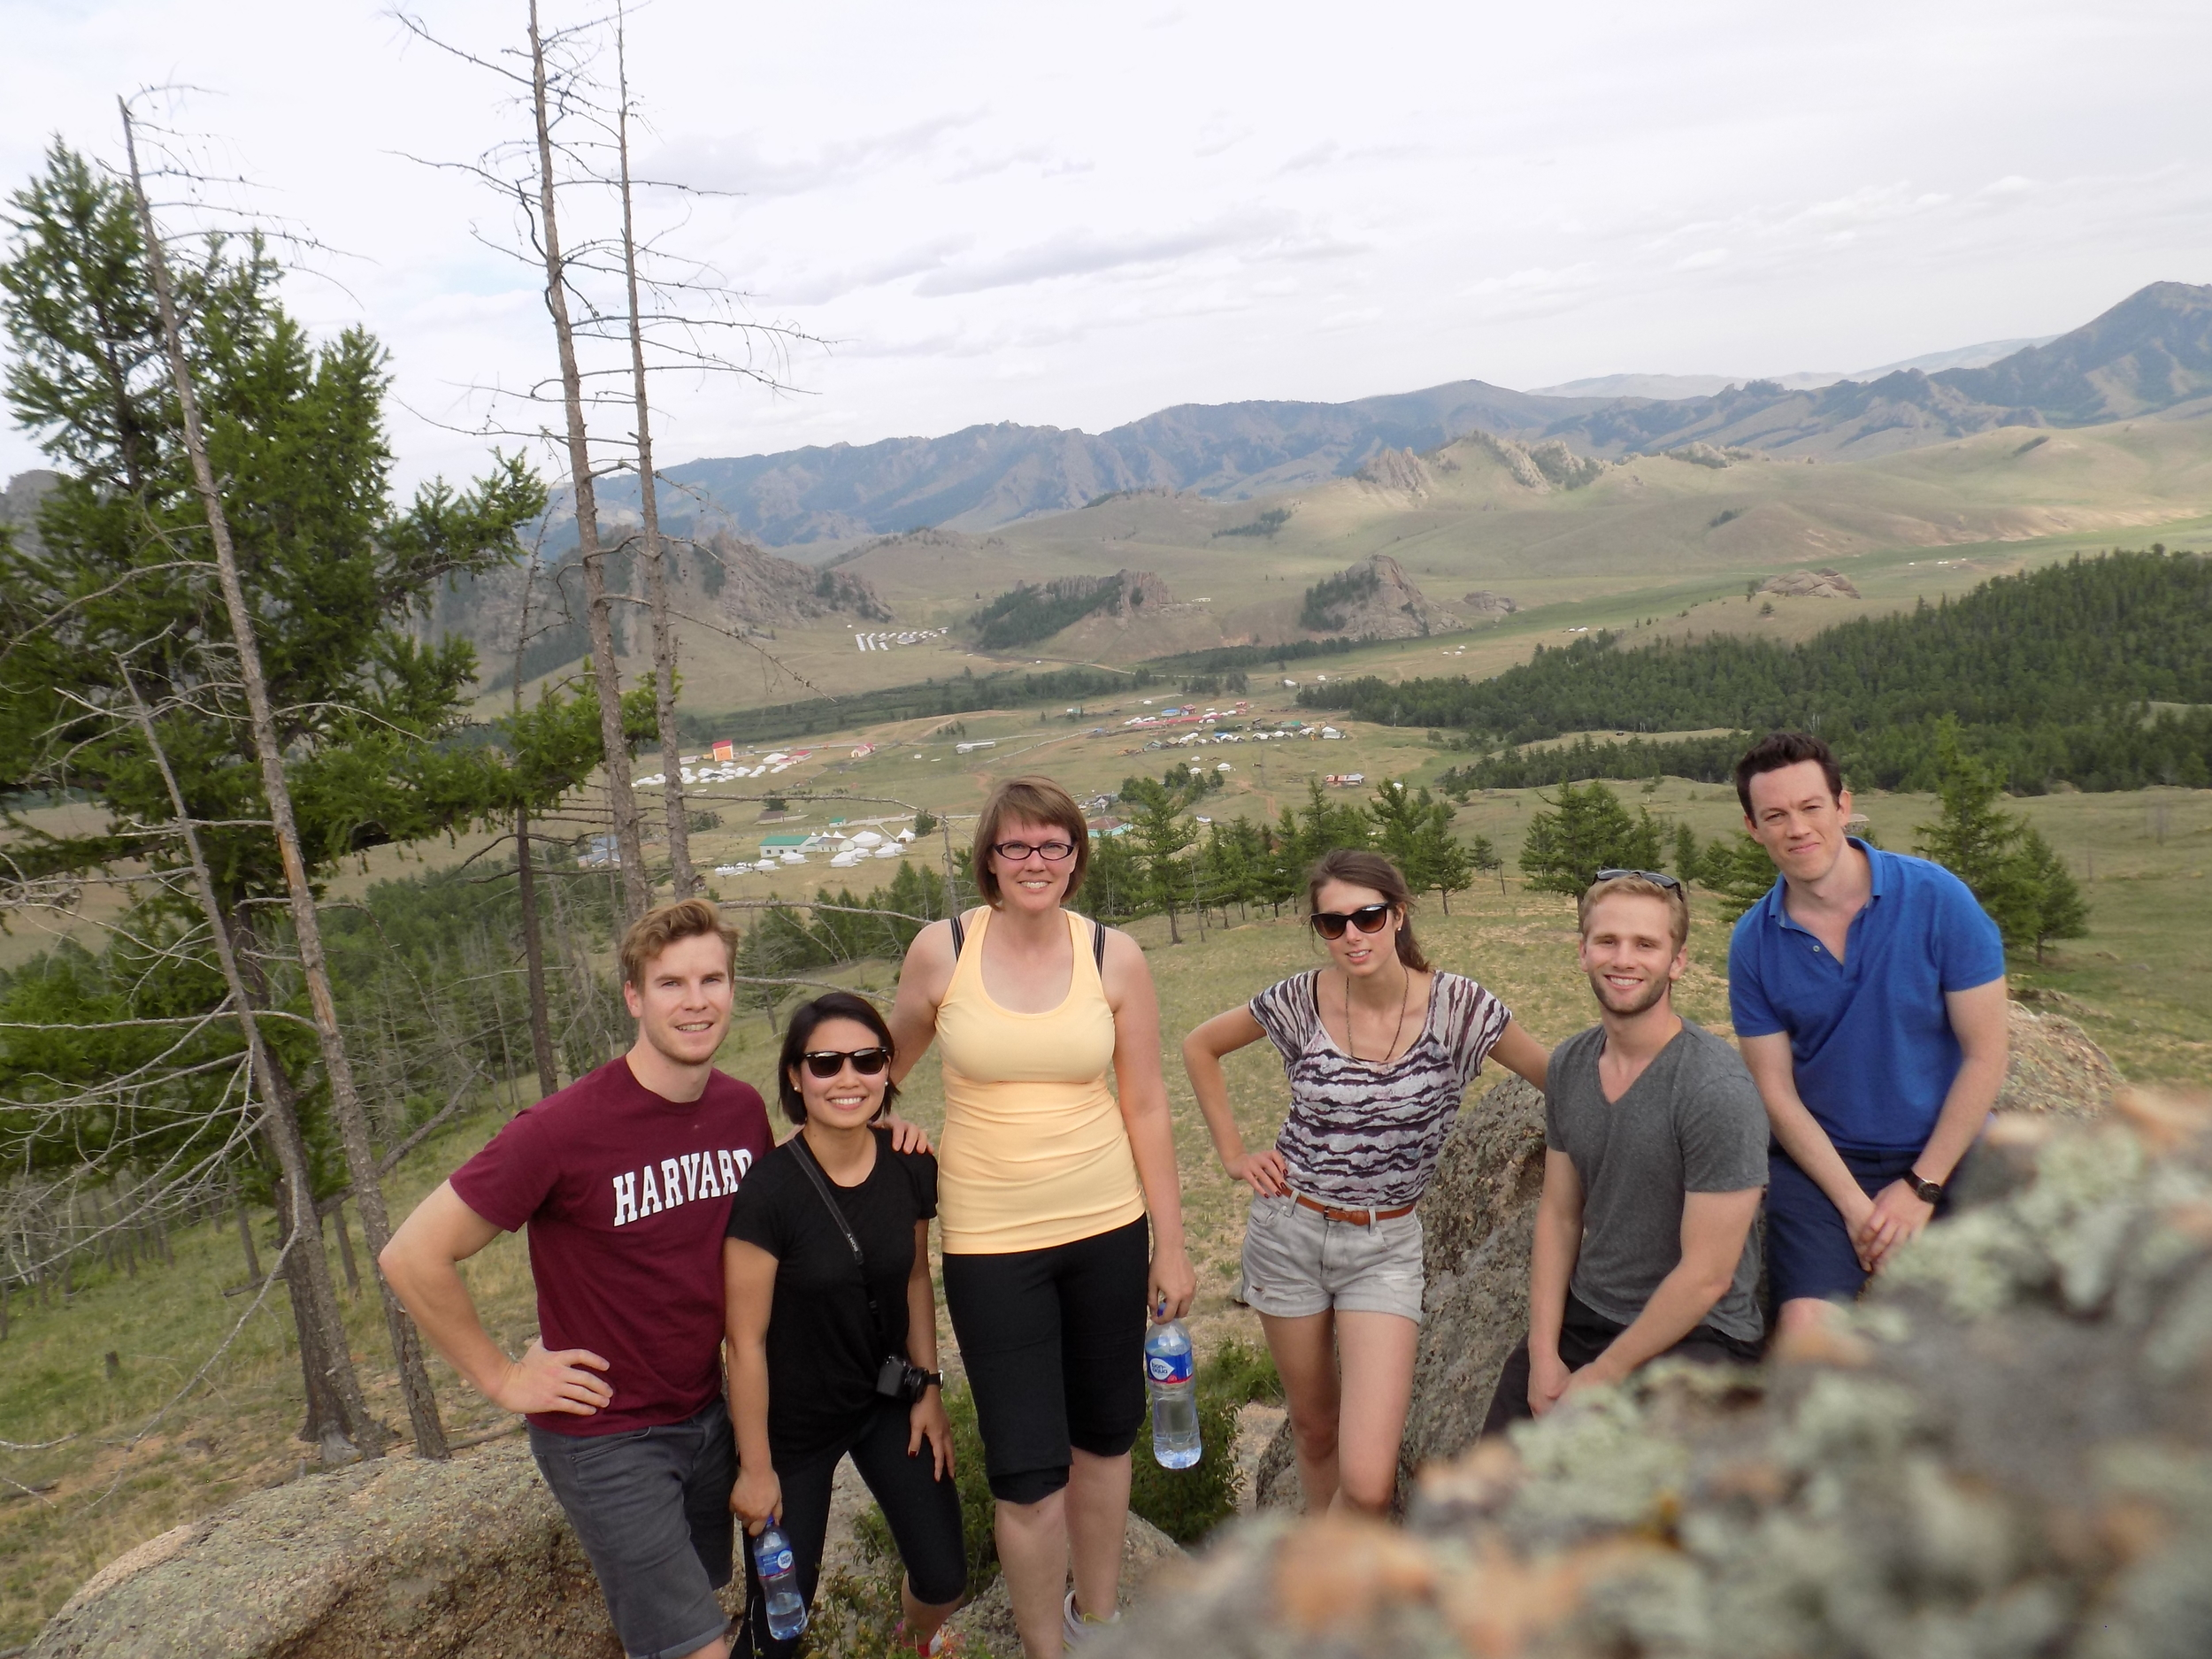 The few and mighty Trekkers who hiked up the mountain